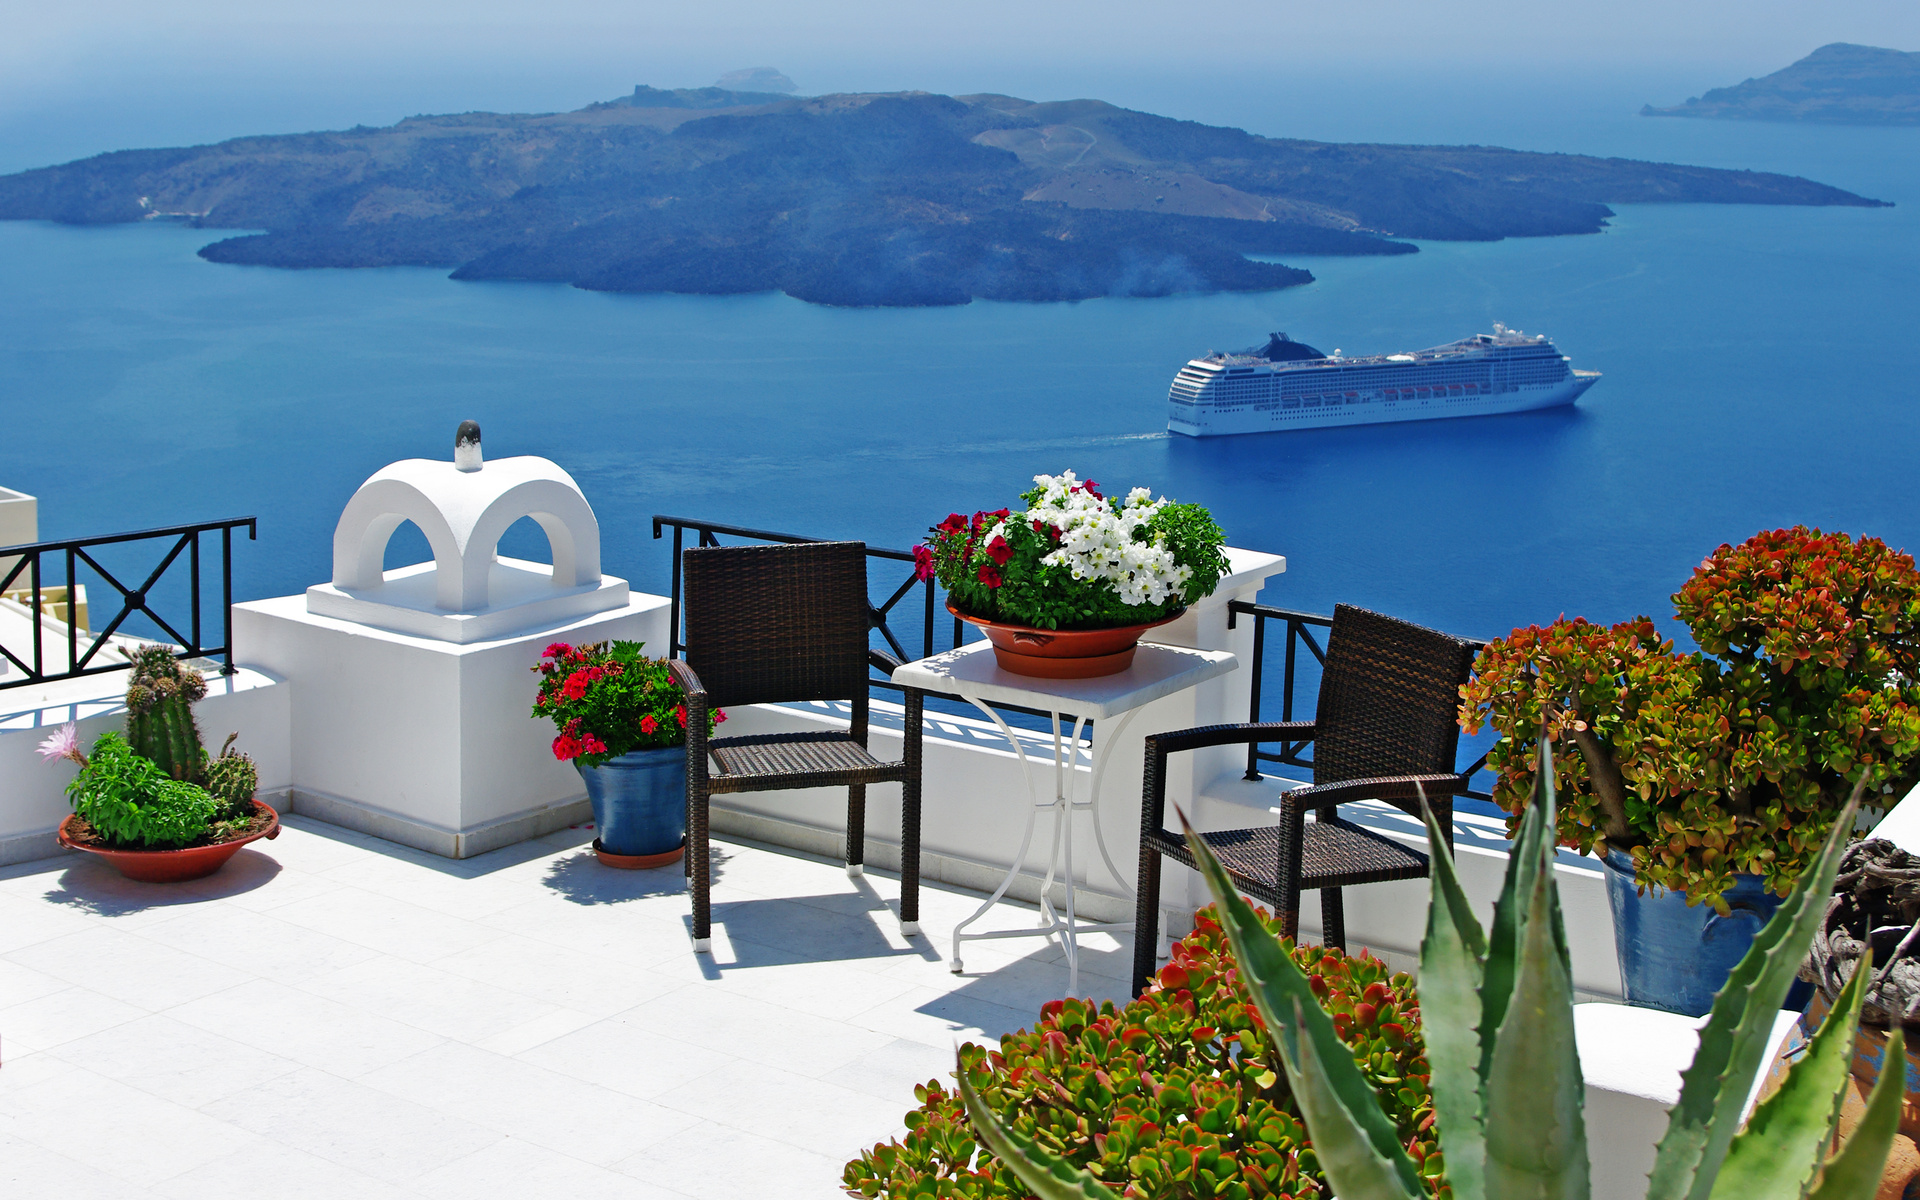 Greece balcony architecture buildings flowers plants for Balcony view wallpaper